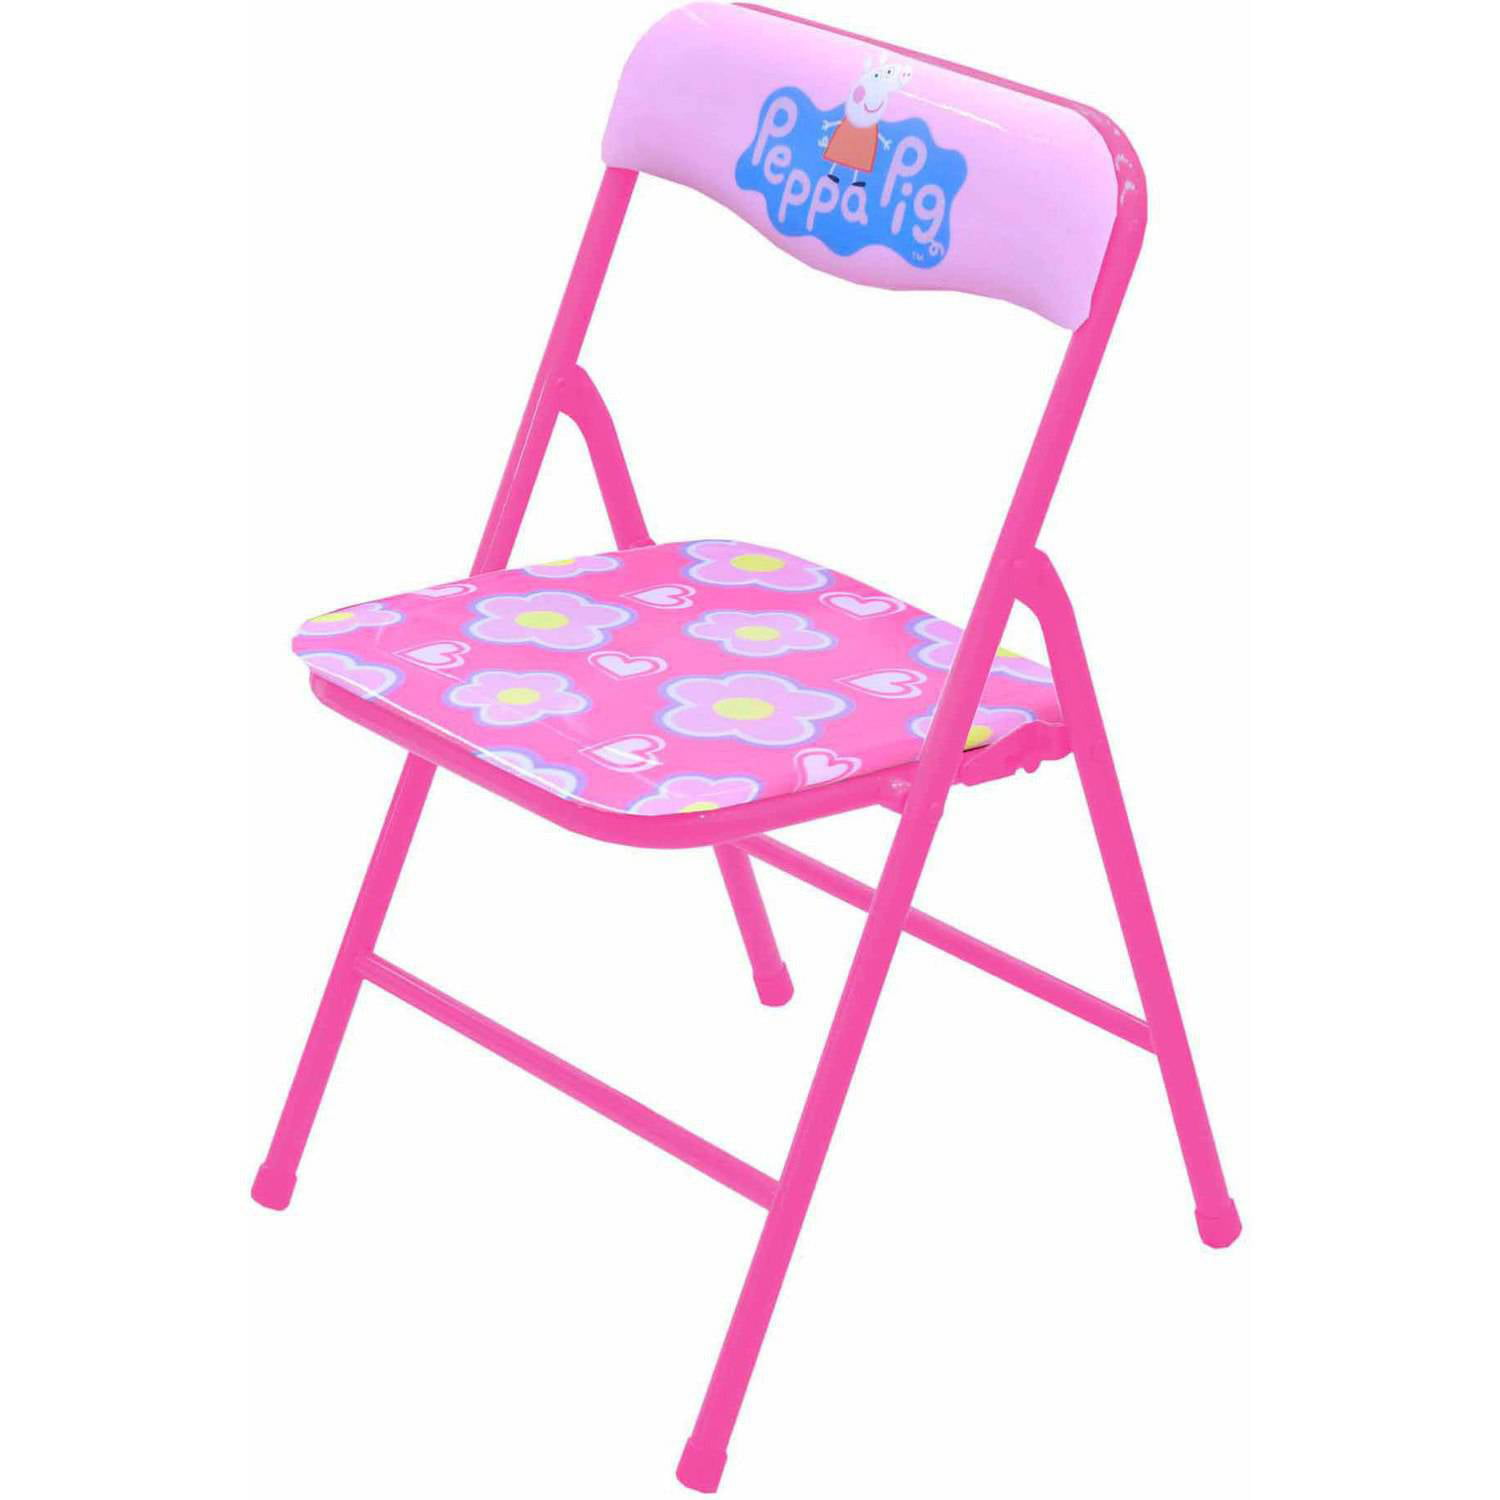 Peppa Pig Table And Chairs Set   Walmart.com